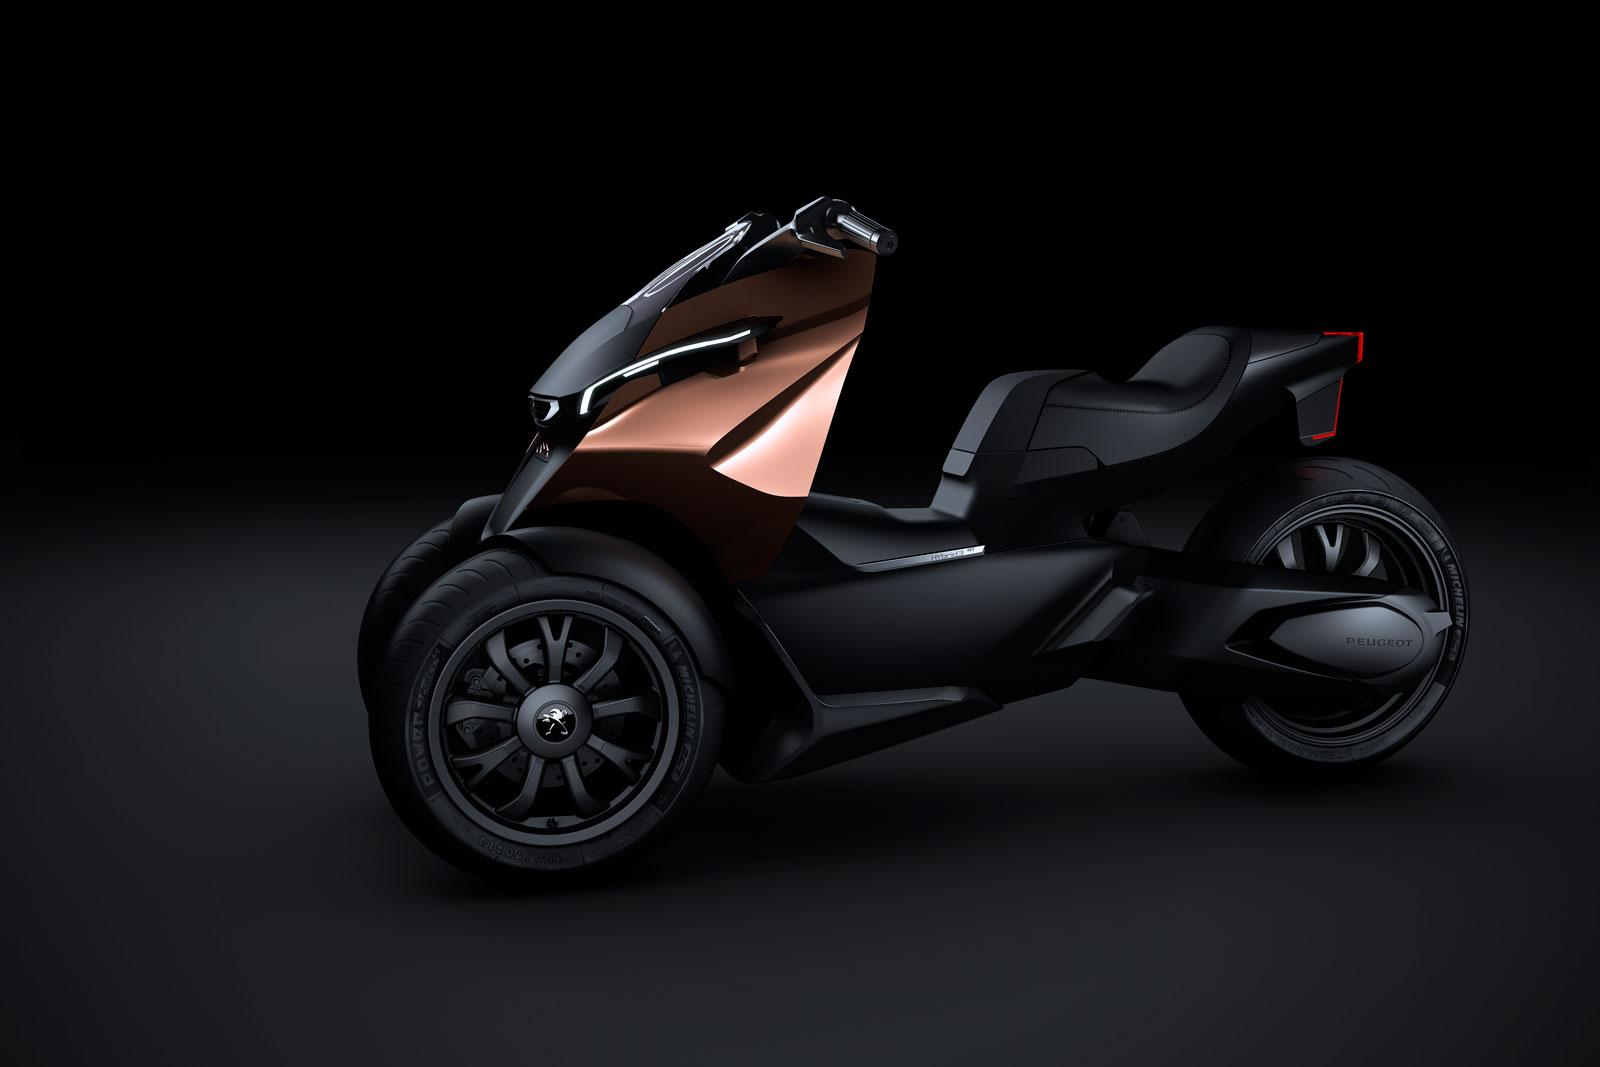 Peugeot Onyx Concept Scooter - Car Body Design